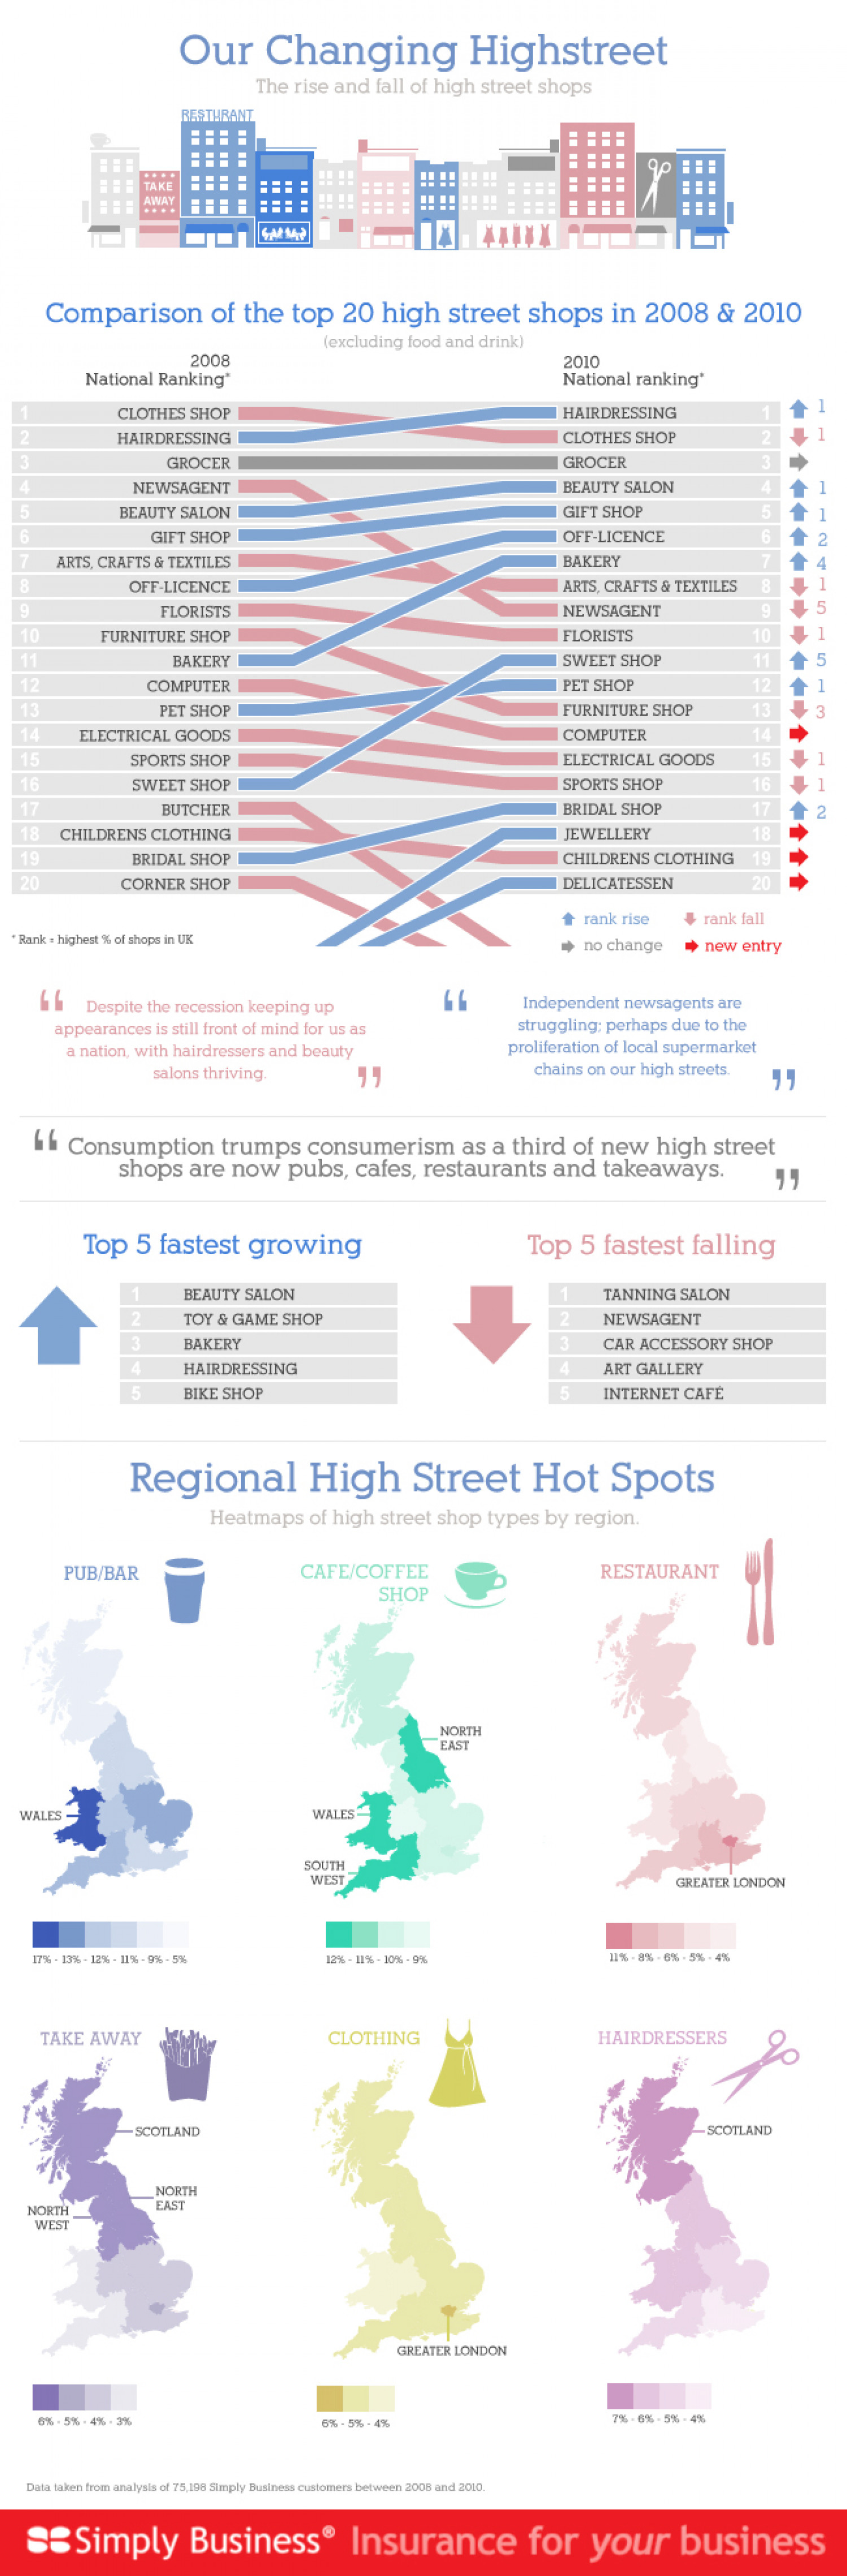 Our Changing High Streets Infographic